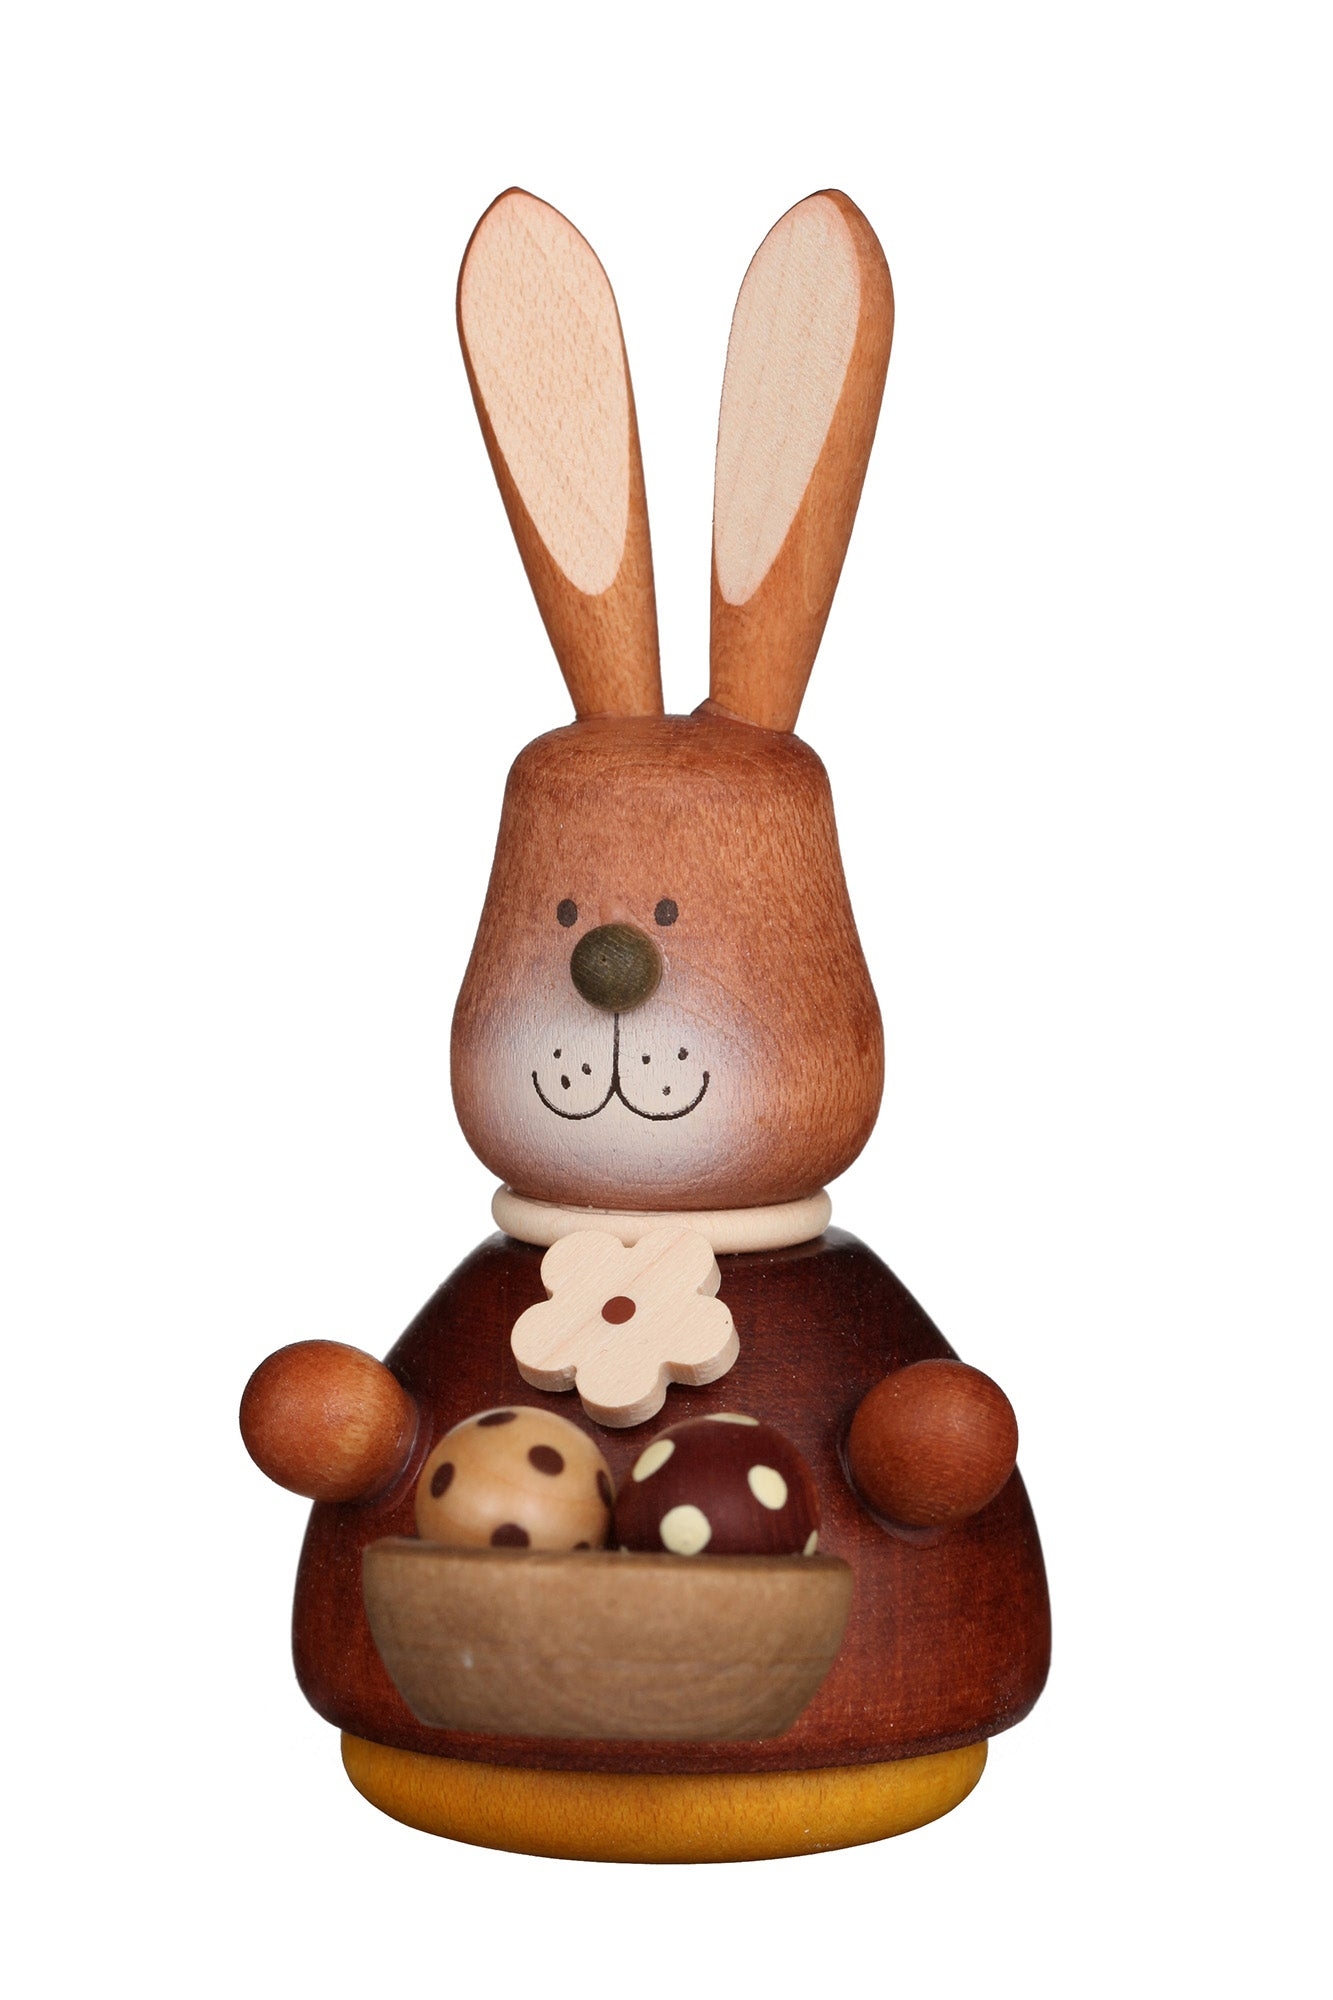 Easter bunny wobble figure with basket of eggs